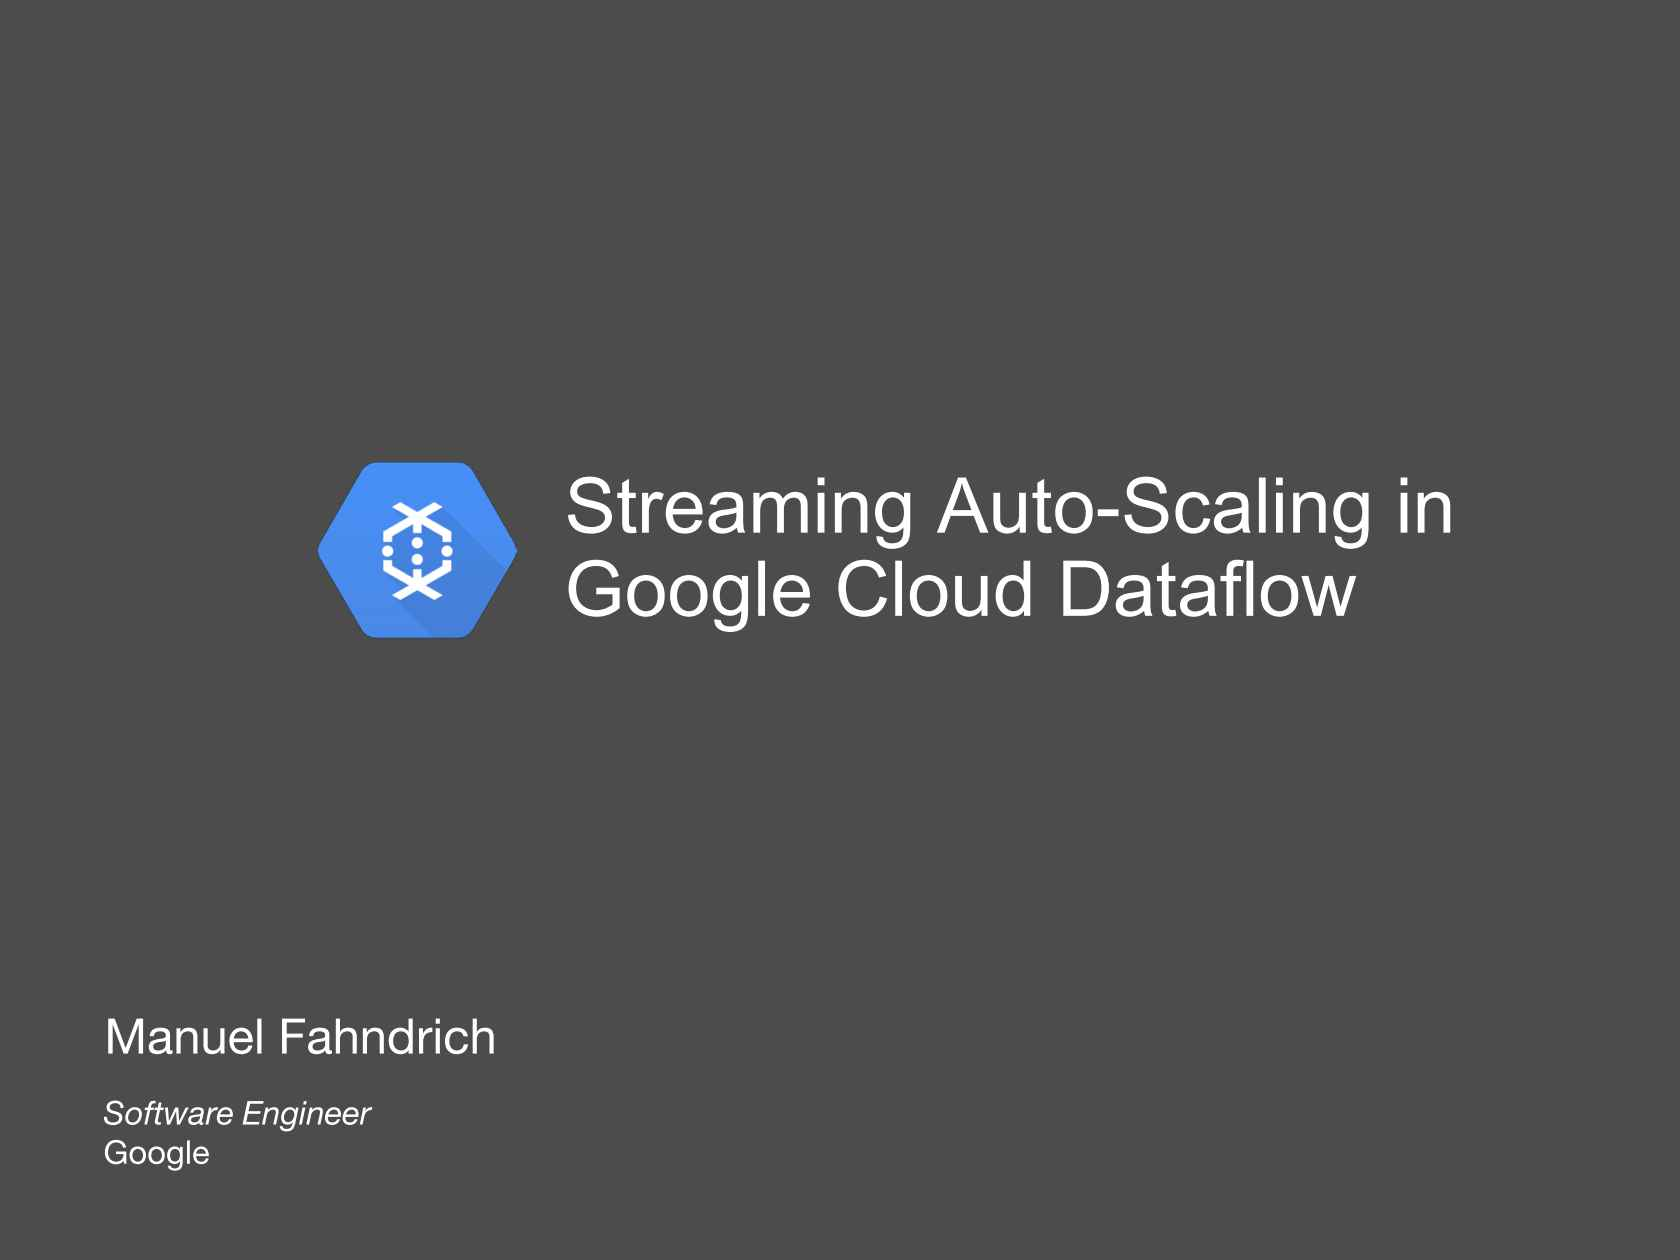 Streaming Auto-scaling in Google Cloud Dataflow